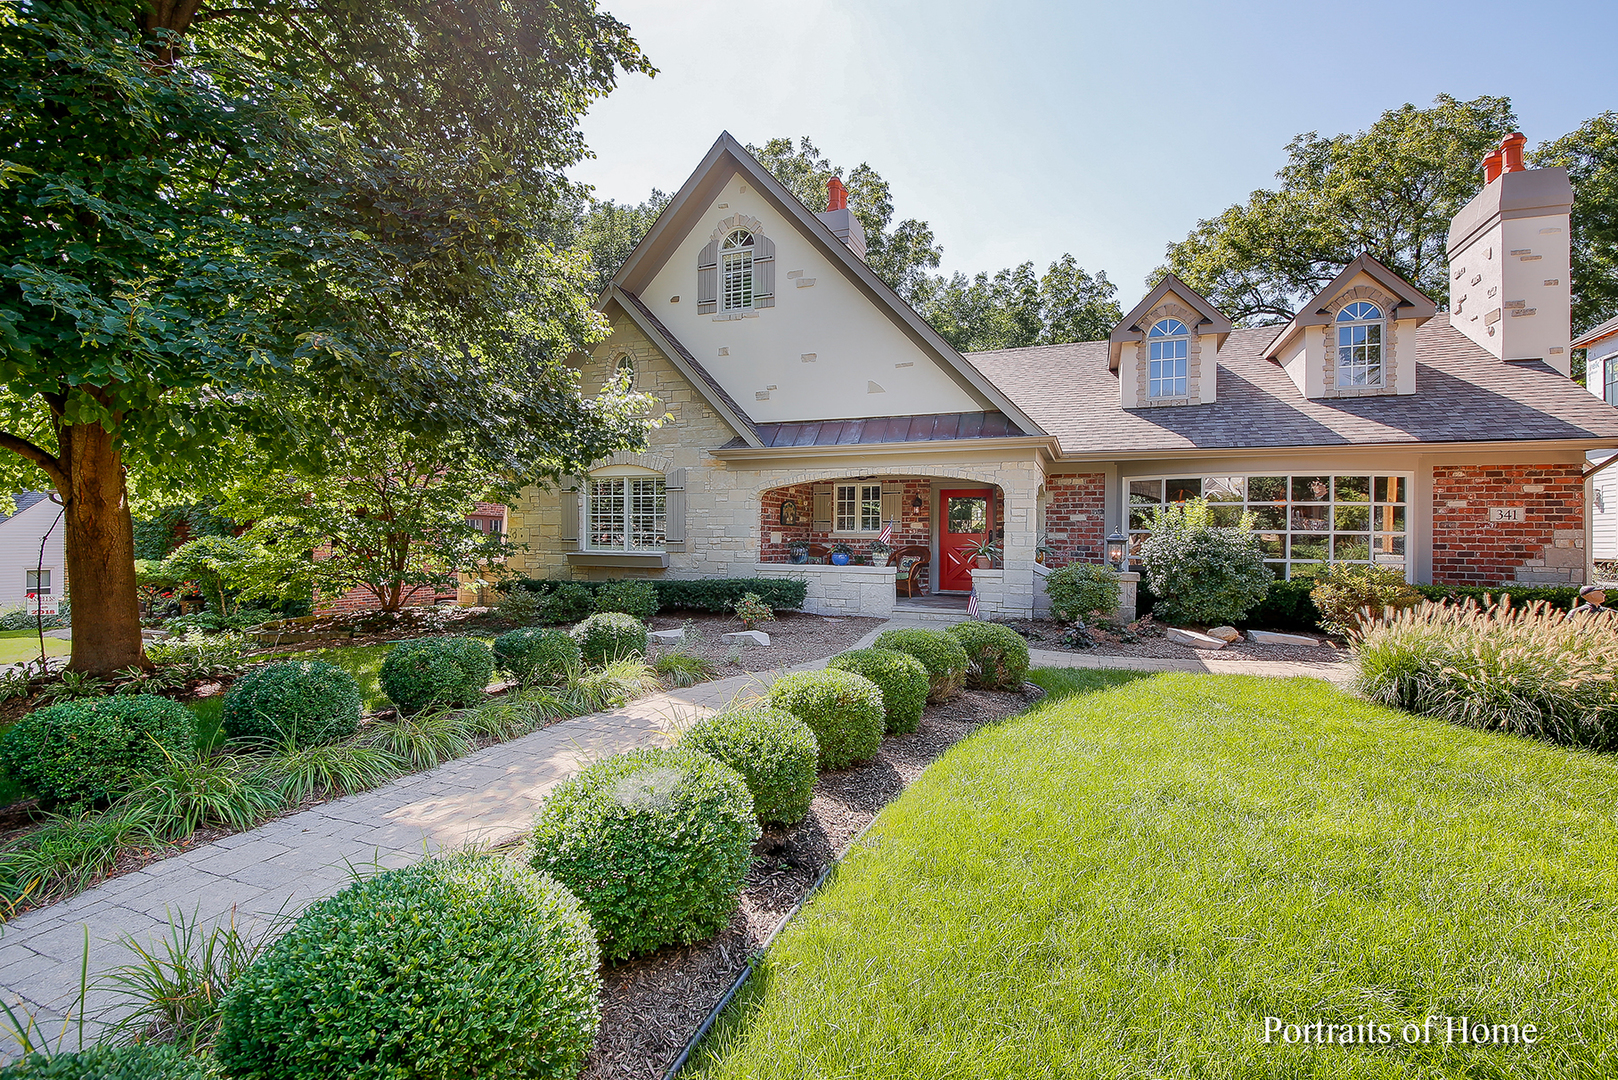 341 SOUTH SLEIGHT STREET, NAPERVILLE, IL 60540